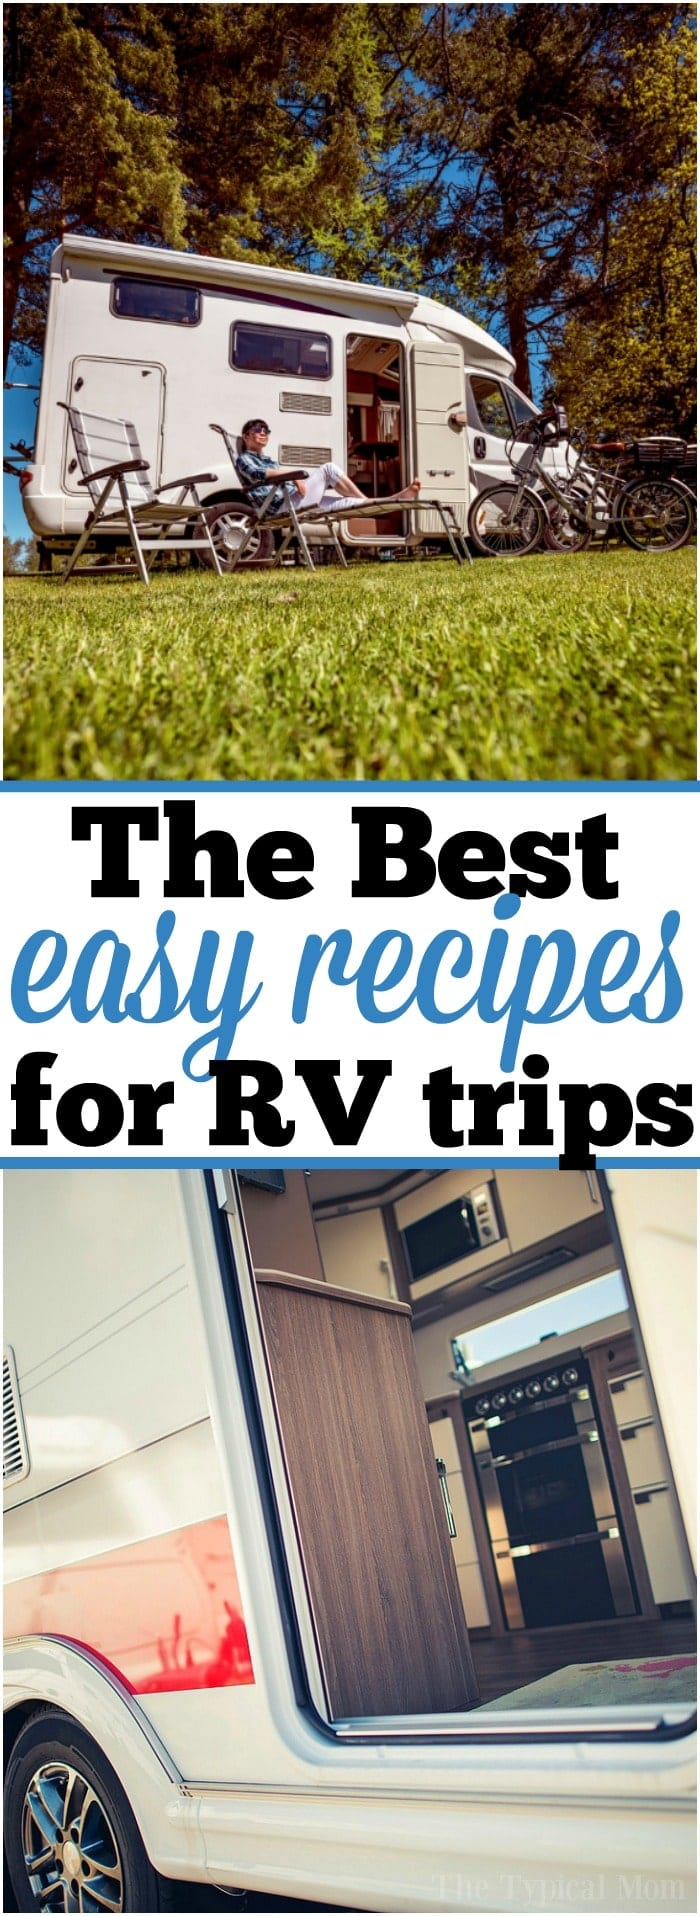 If you travel a lot like we do you need a few easy RV meals to prepare when you're camping or on a road trip! RV meal planning is here to make it easier as well as links to easy recipes you can make when you're glamping in your RV wherever you go. Here's my trick to cooking an entire meal in 20 minutes each night! #camping #rv #meals #recipes #easy